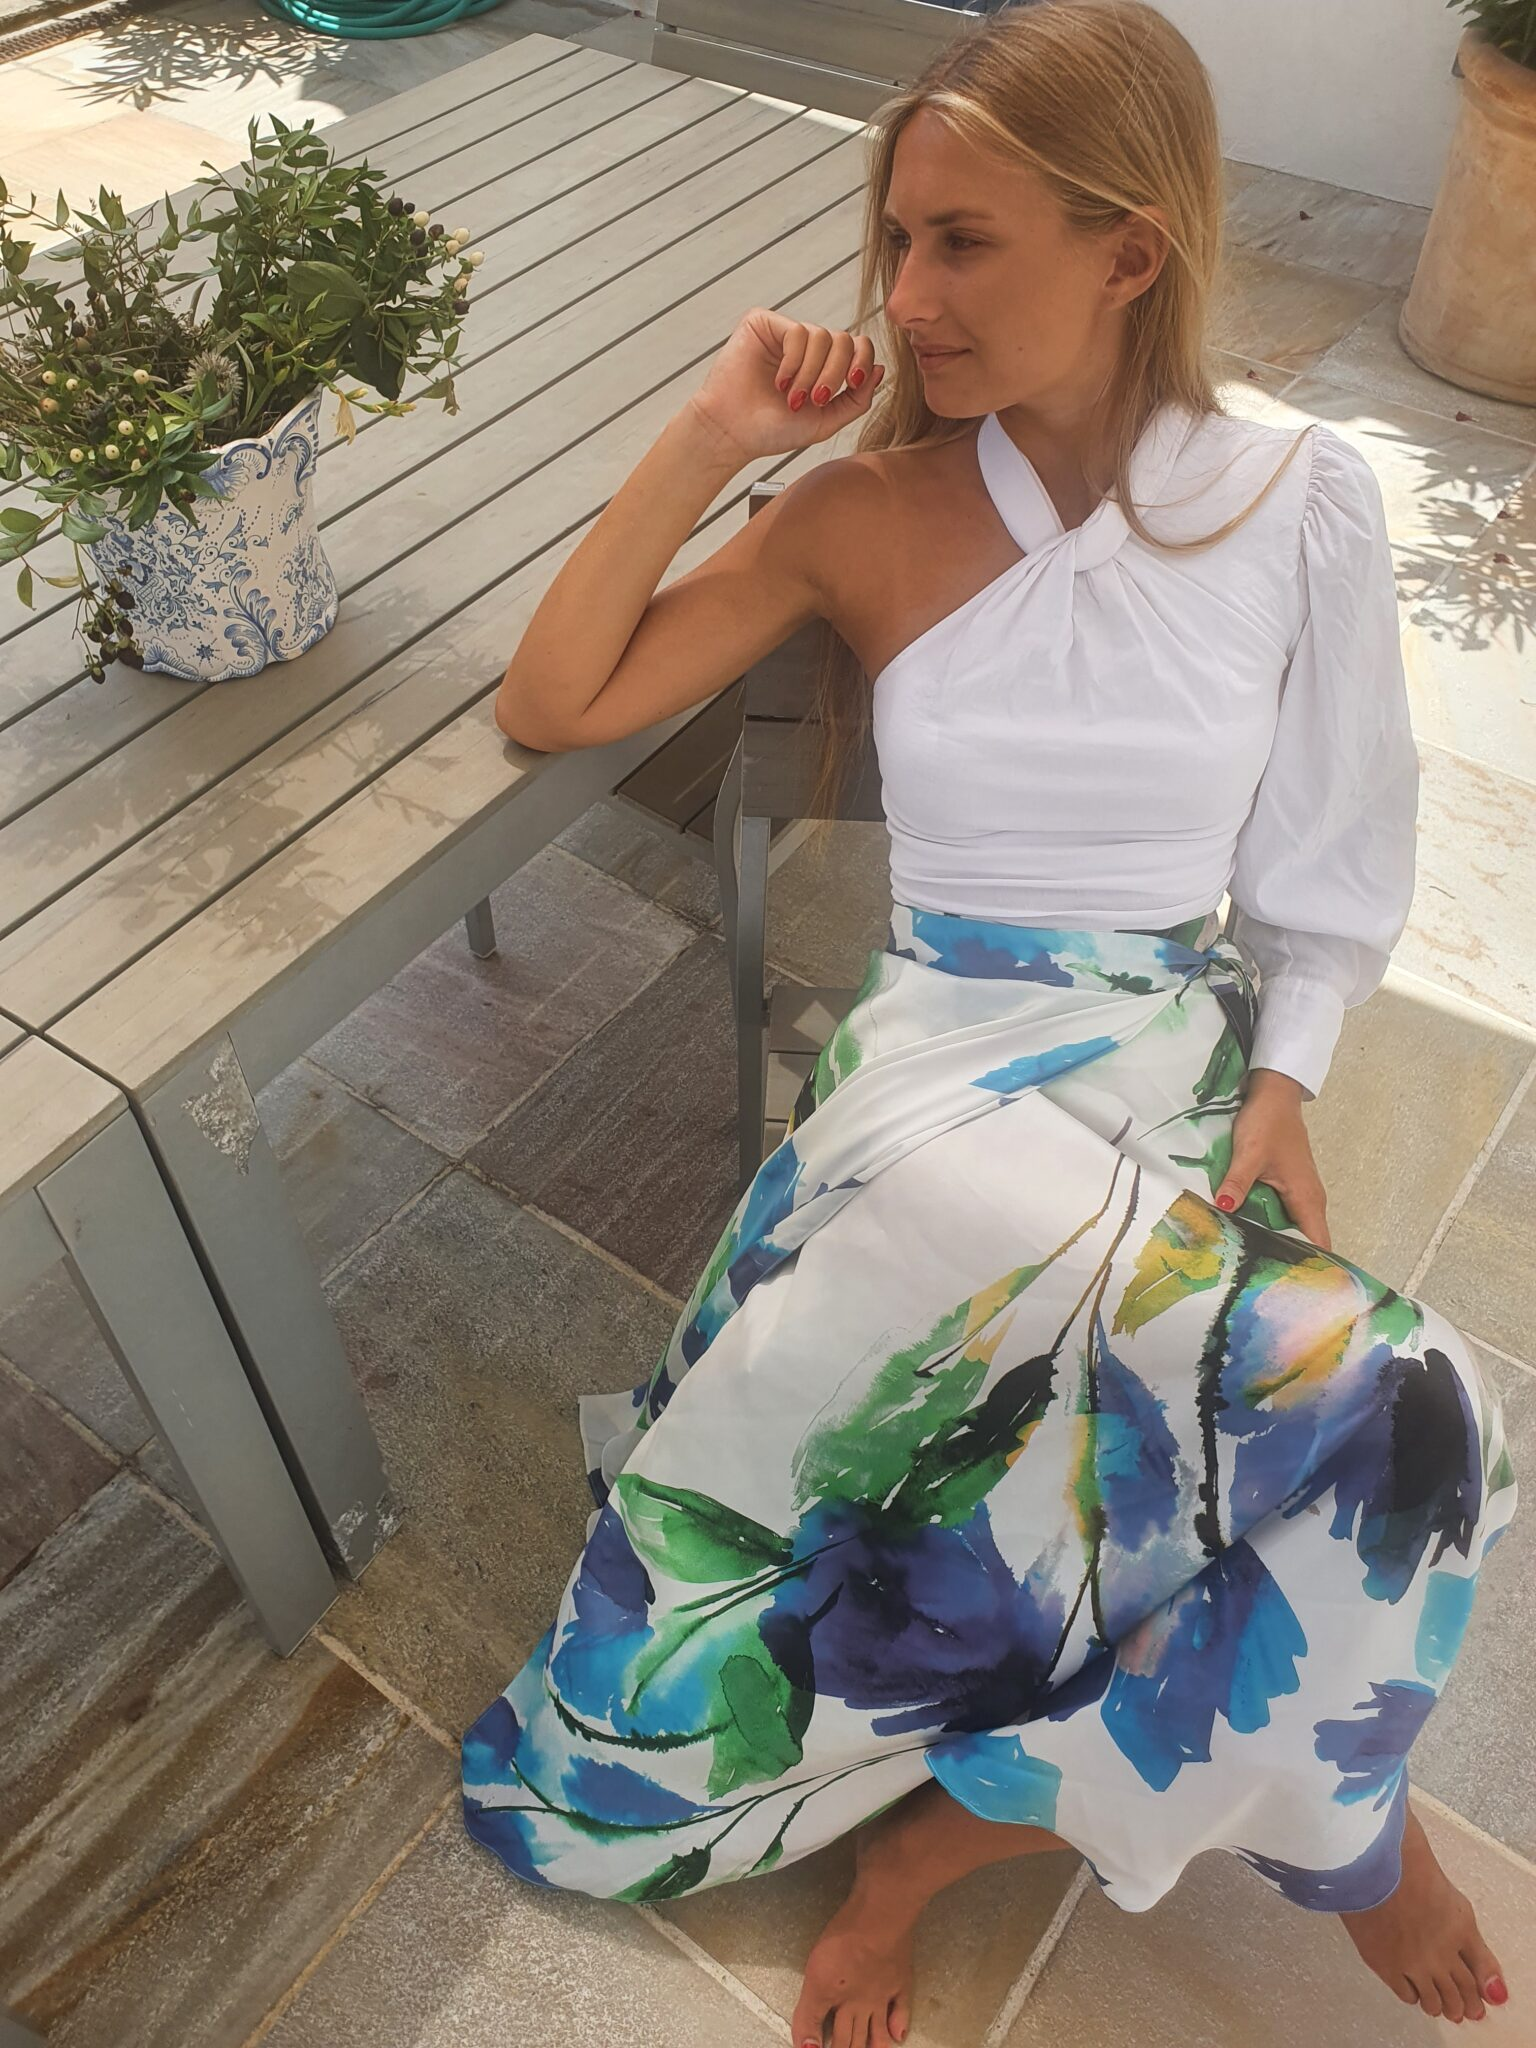 Diana d'Orville printed silk skirt with blue flowers on white background